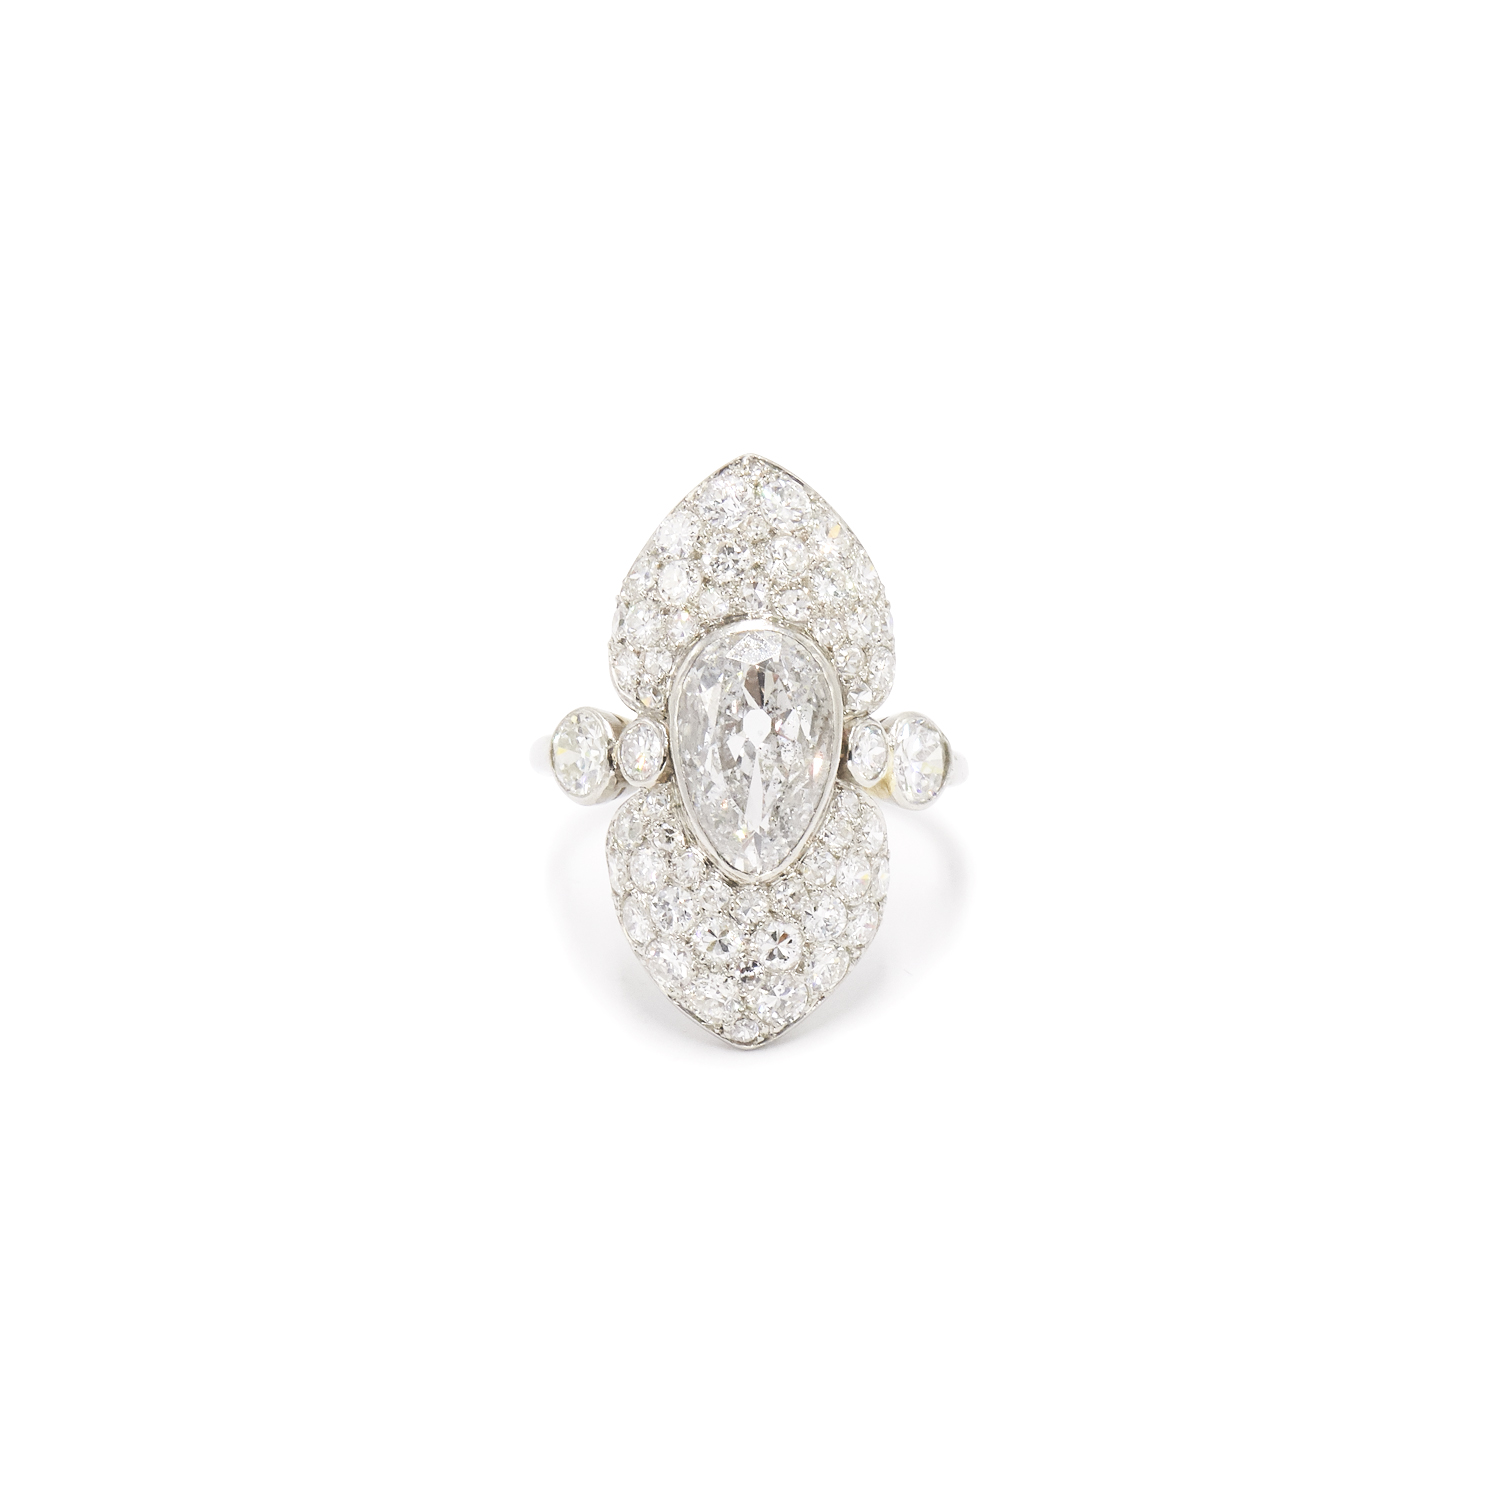 Art Deco Antique Pear Shape Diamond Ring by Cartier Style F-40424-FL-0-0